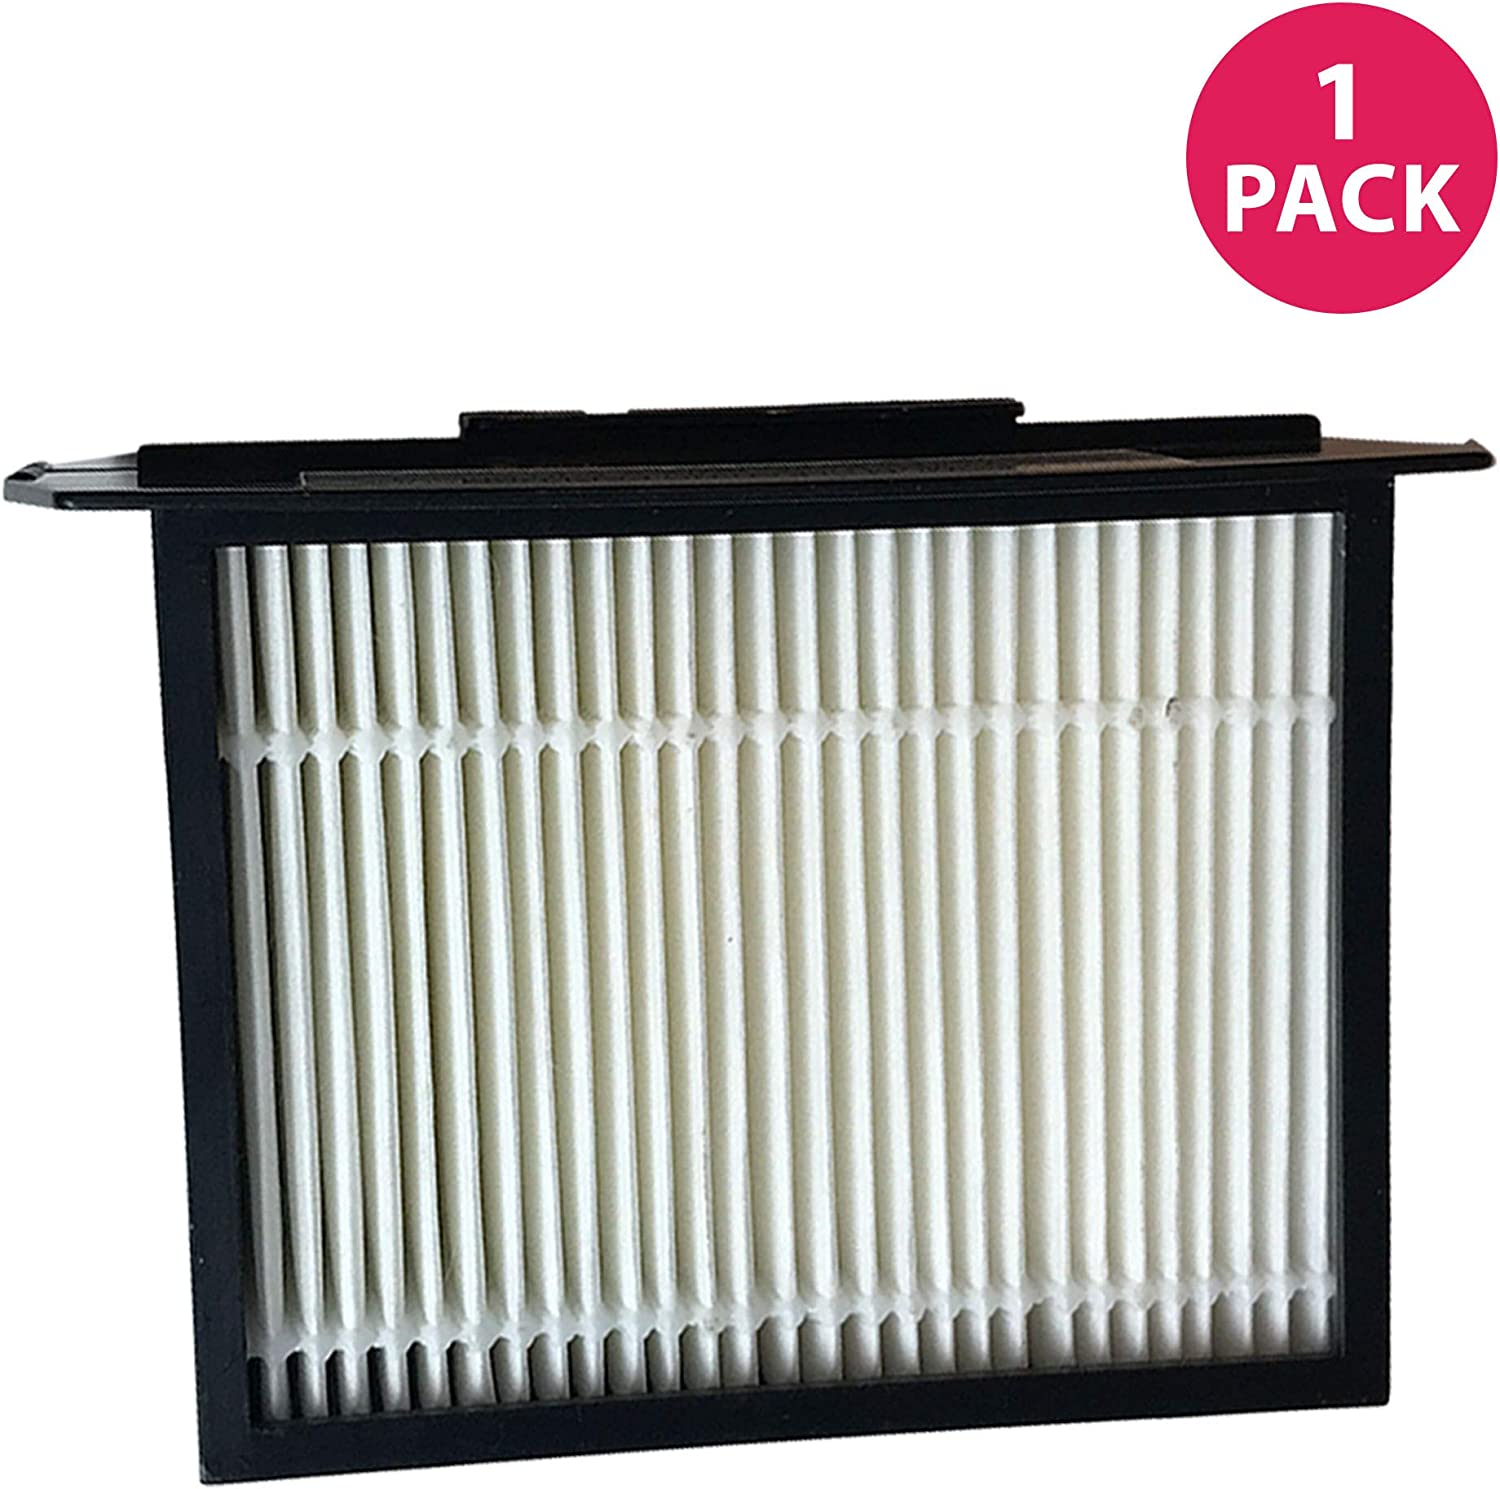 Crucial Vacuum Replacement Vacuum Filter - Compatible with Dirt Devil Part # 3LK0540001 and Dirt Devil F13 HEPA Style Filter & Foam Pre-Filter Models, Vacs - Fits Reaction Dual Cyclonic (1 Pack)